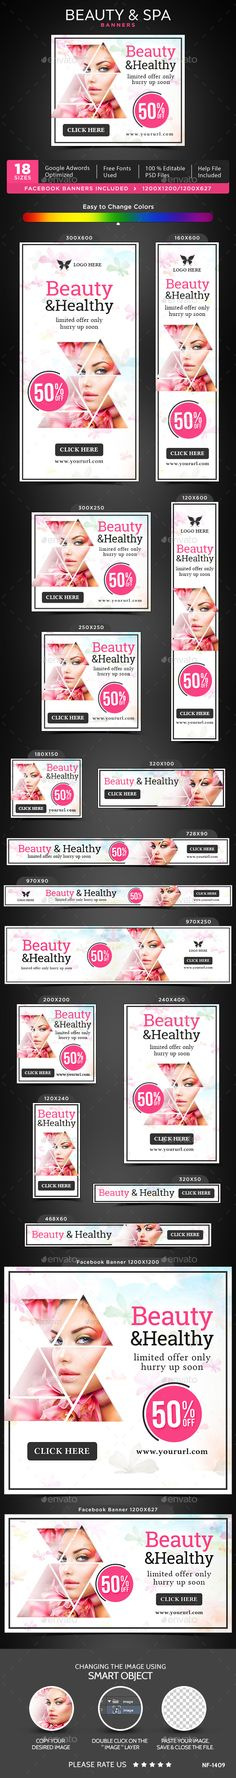 Beauty & Spa Banners Template PSD. Download here: https://graphicriver.net/item/beauty-spa-banners/17034747?ref=ksioks